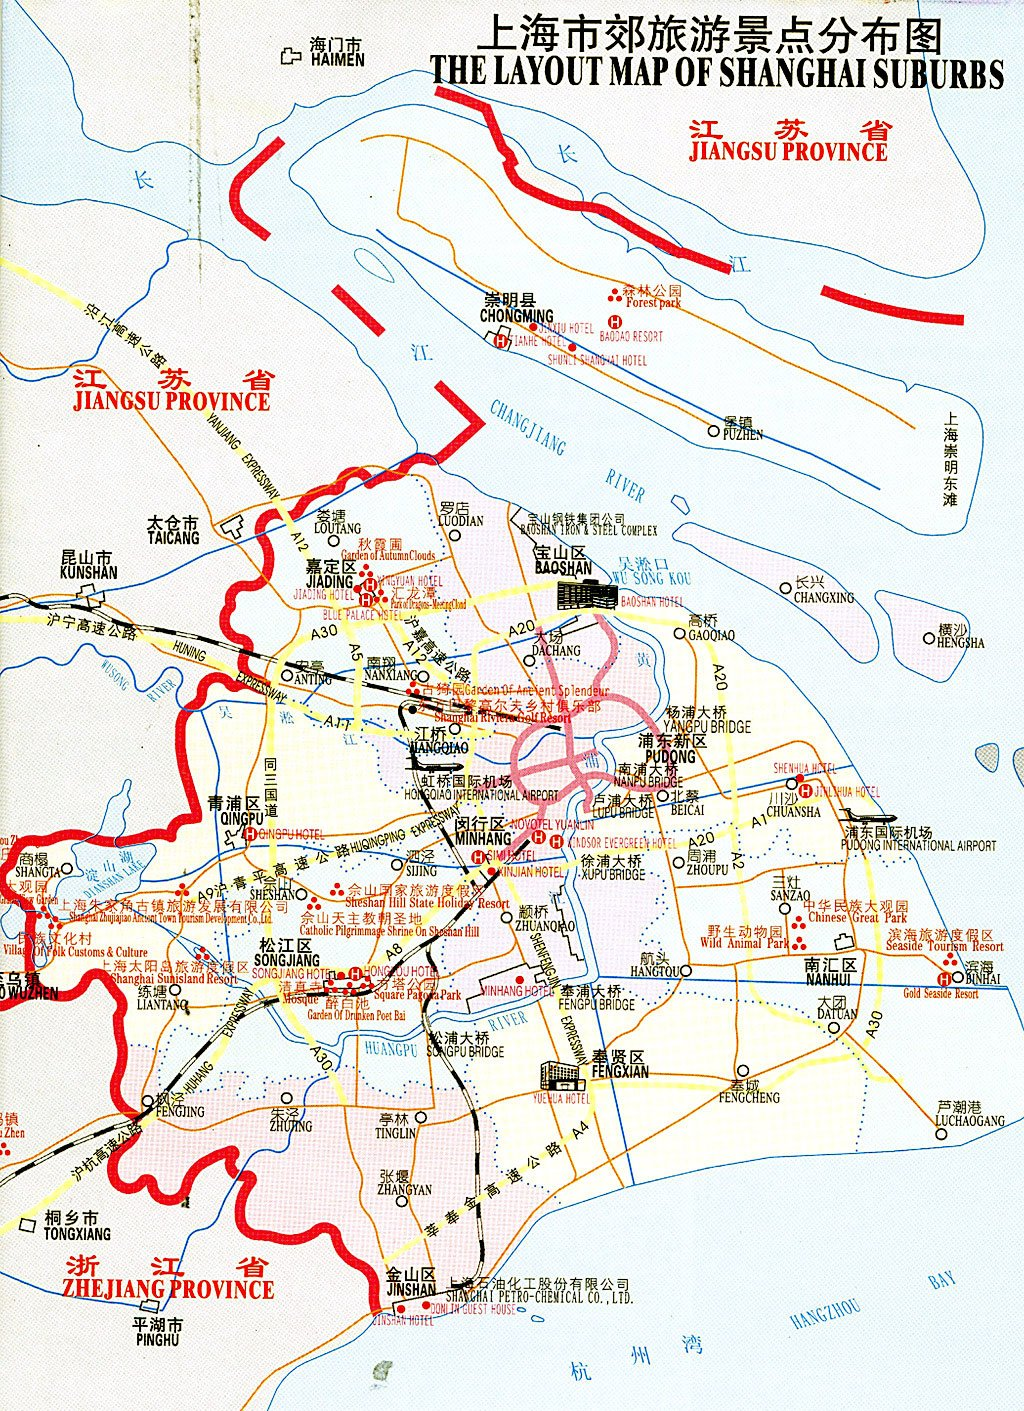 Layout Map of Shanghai Suburbs